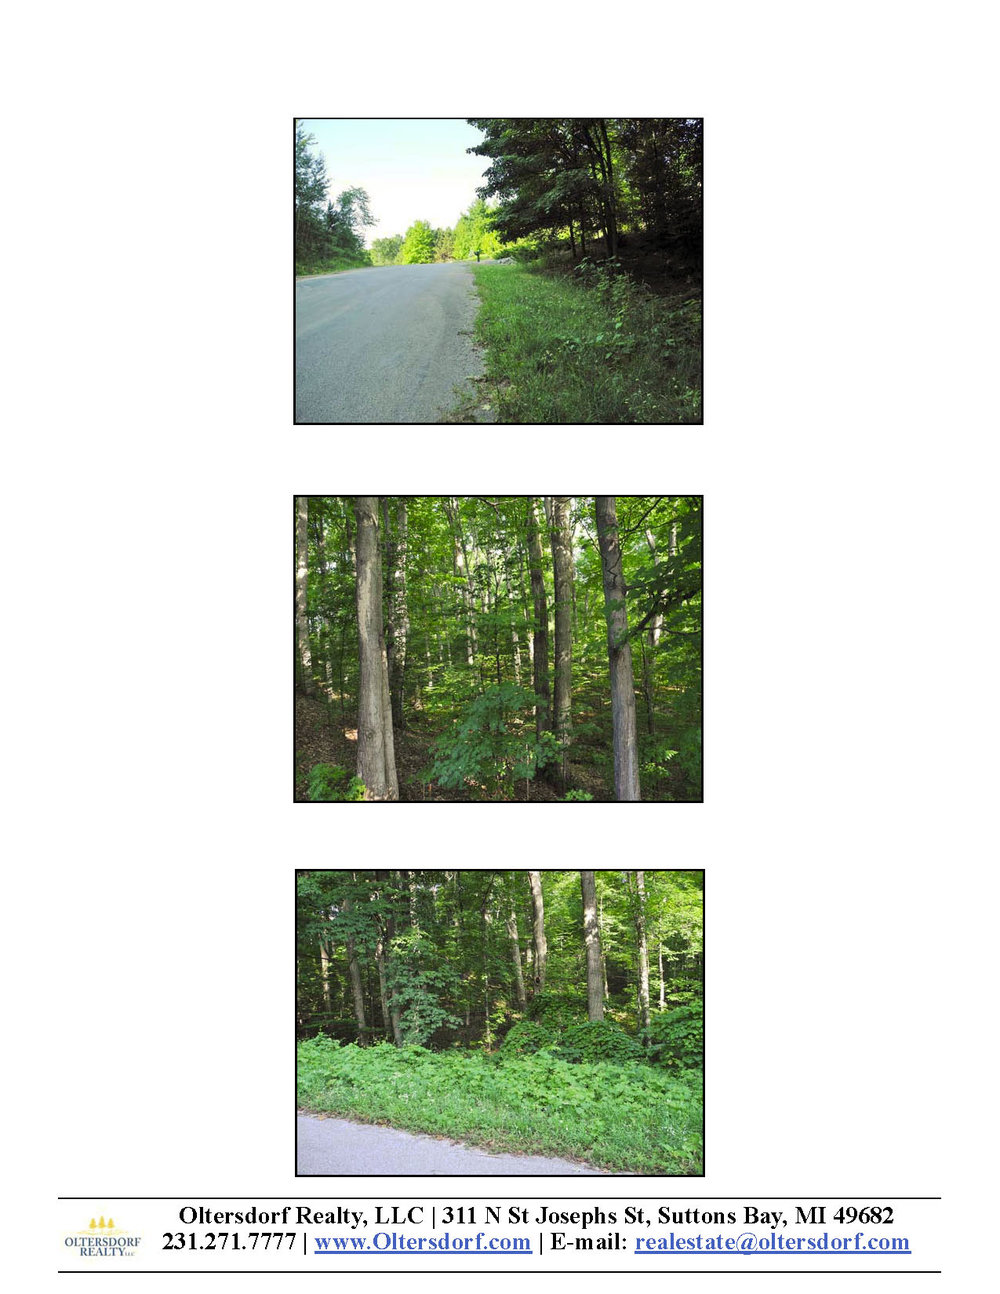 S Bay View Trail Lot 88, Suttons Bay - For Sale by Oltersdorf Realty LLC - Marketing Packet (3).jpg